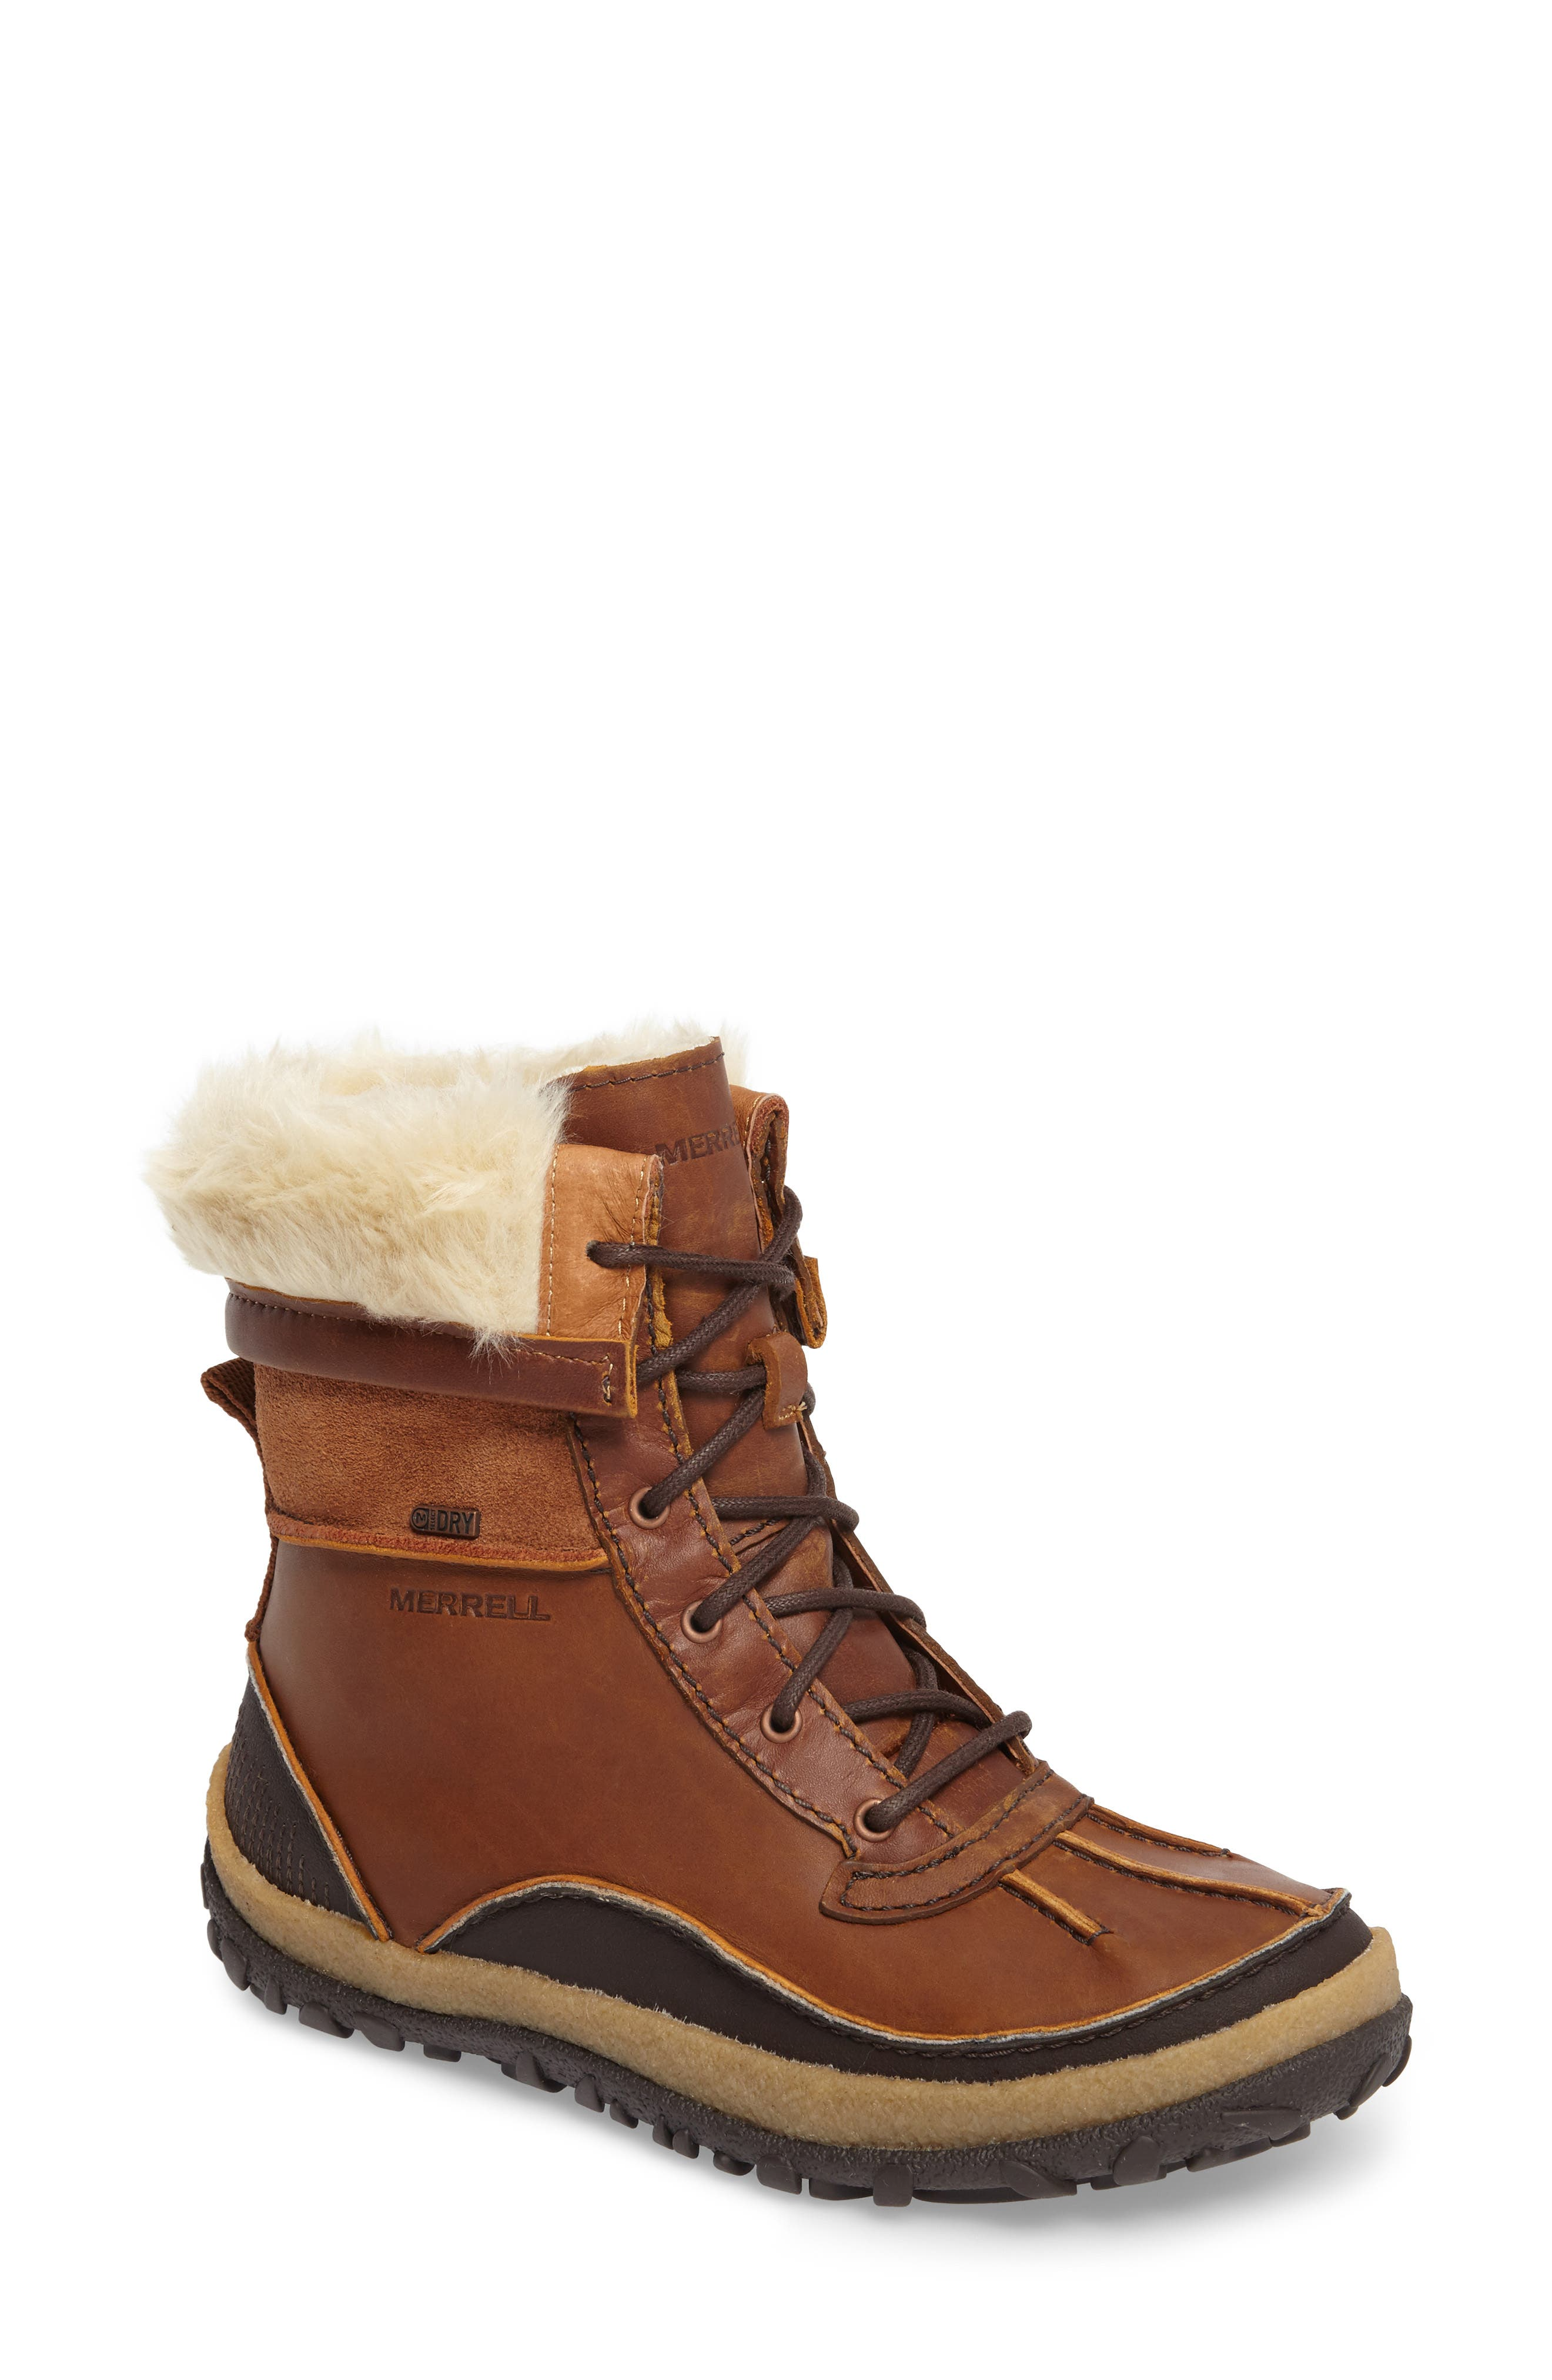 Alternate Image 1 Selected - Merrell Tremblant Insulated Waterproof Boot (Women)